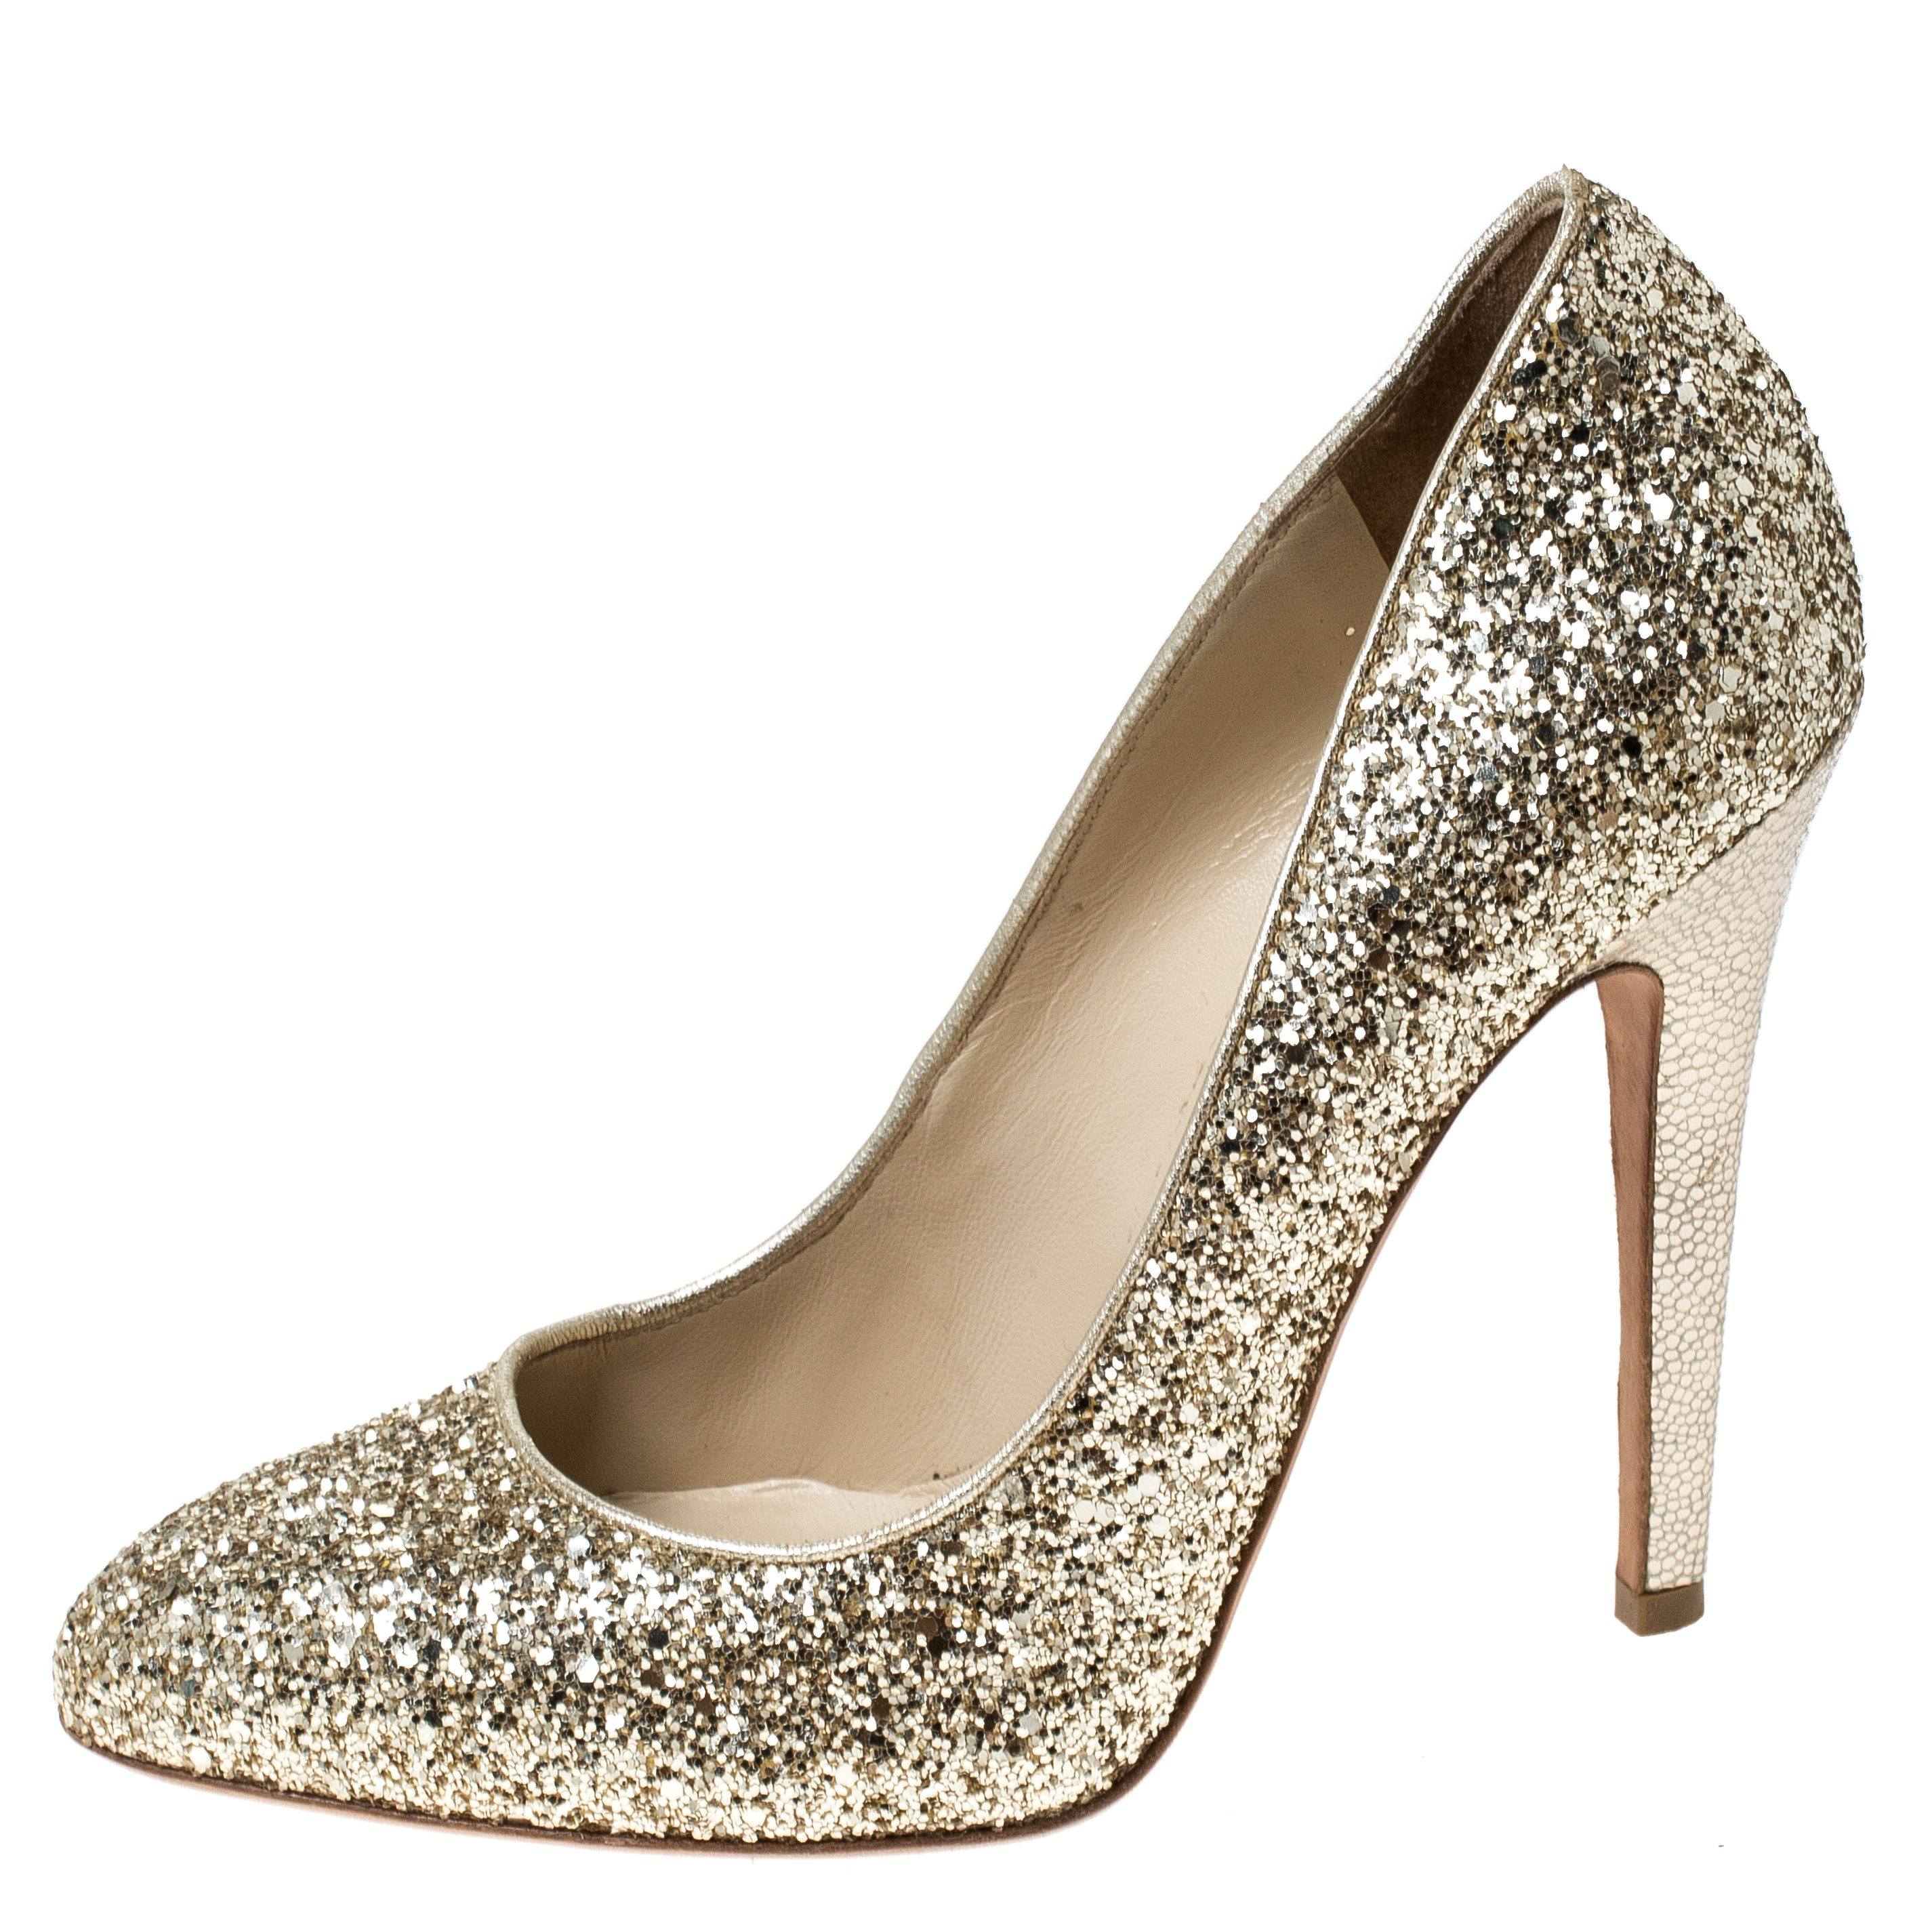 Jimmy Choo Or Métallique Glitter Pompes Victoria Taille 38.5